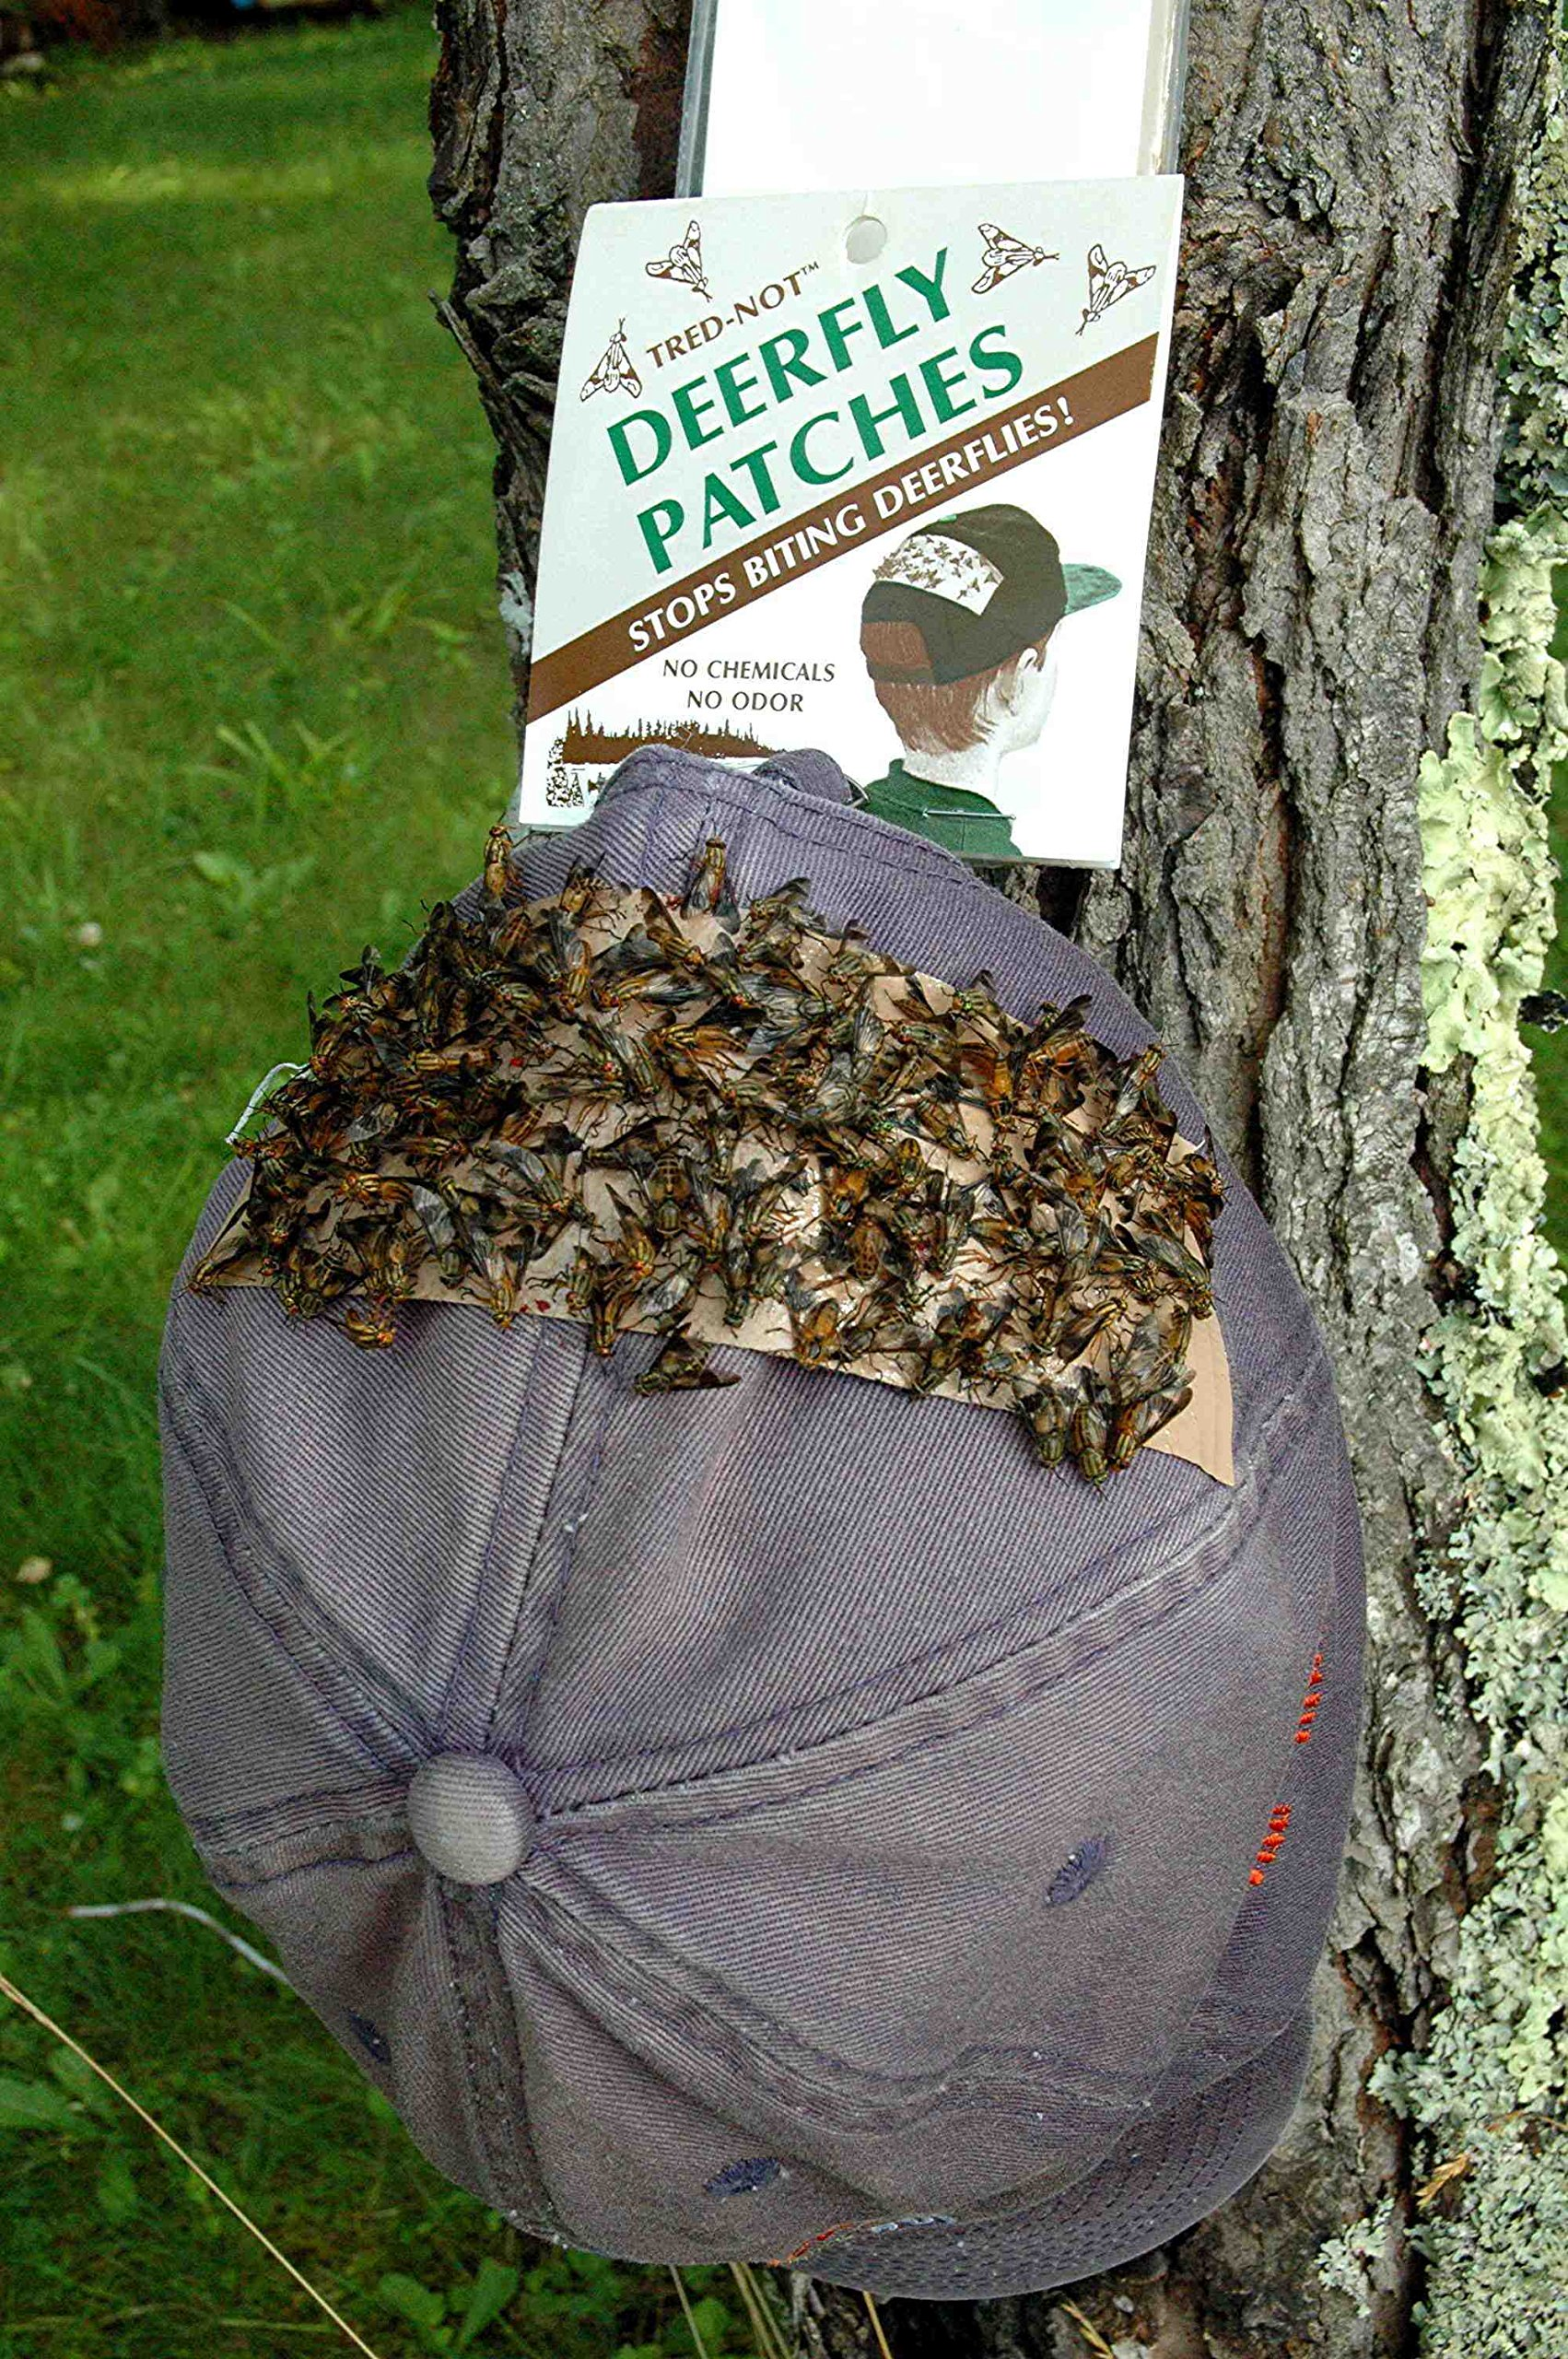 60 / Pk Deerfly Patches / TredNot Deer Fly Patch ''natural repellent''